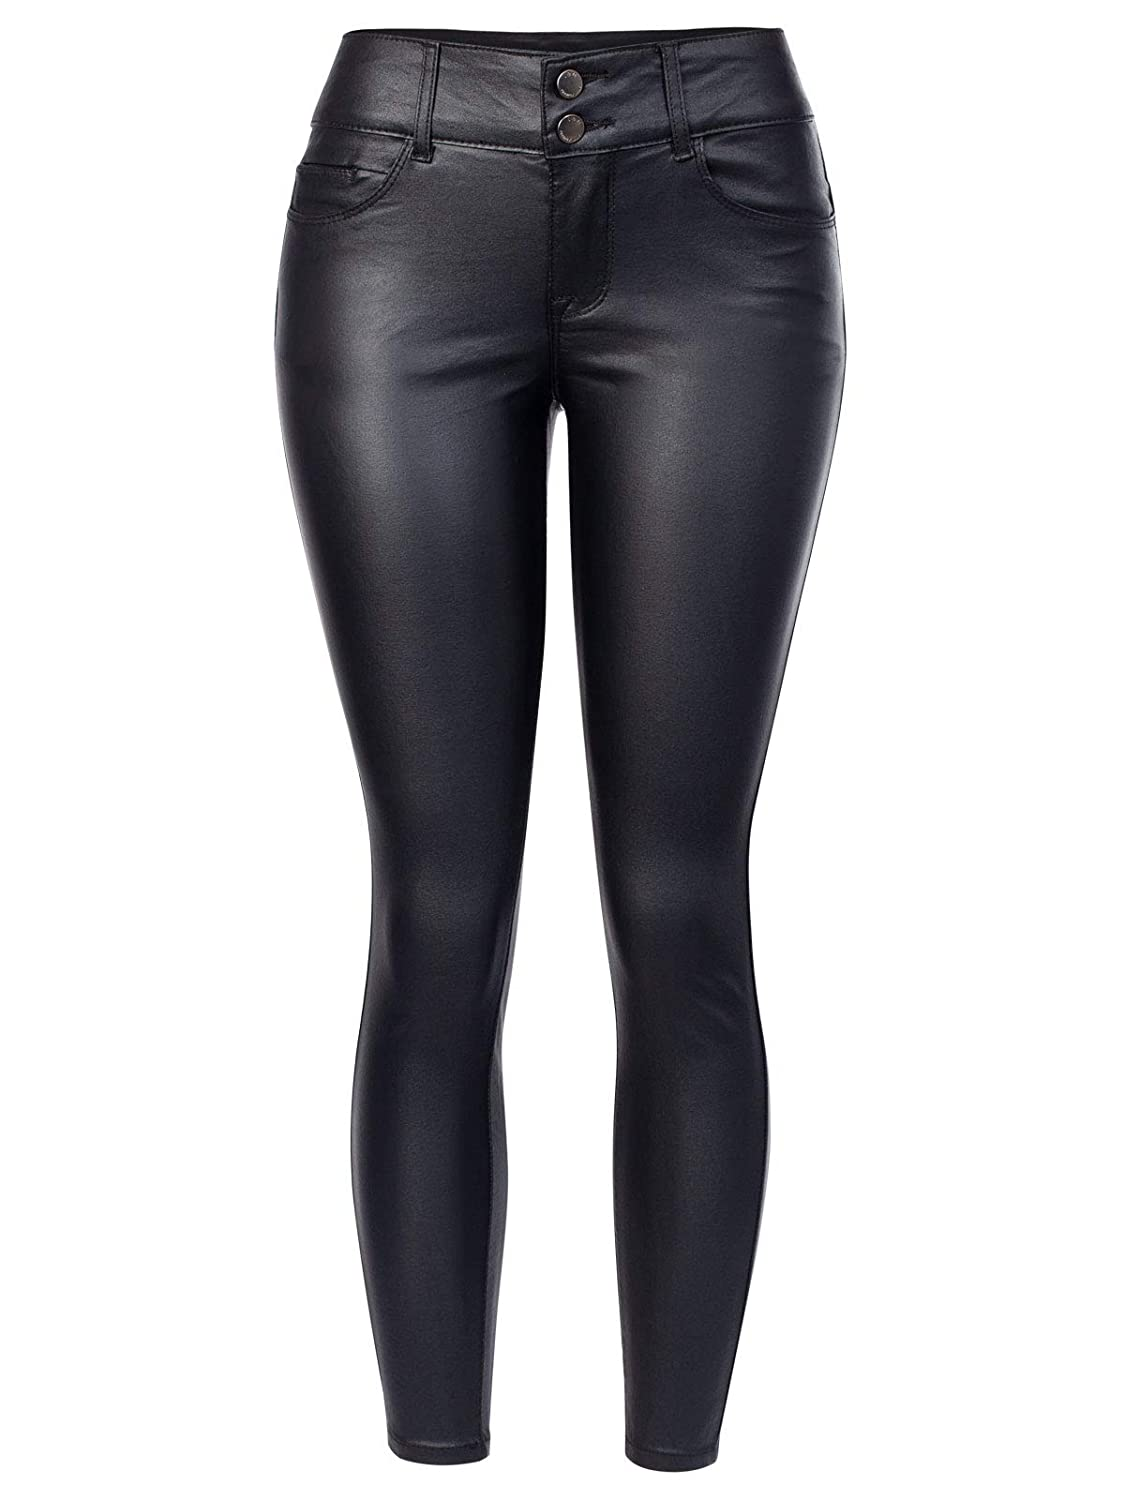 Ipaw026 Black Instar Mode Women's Super Soft MidRise Stretch Moto Jeggings